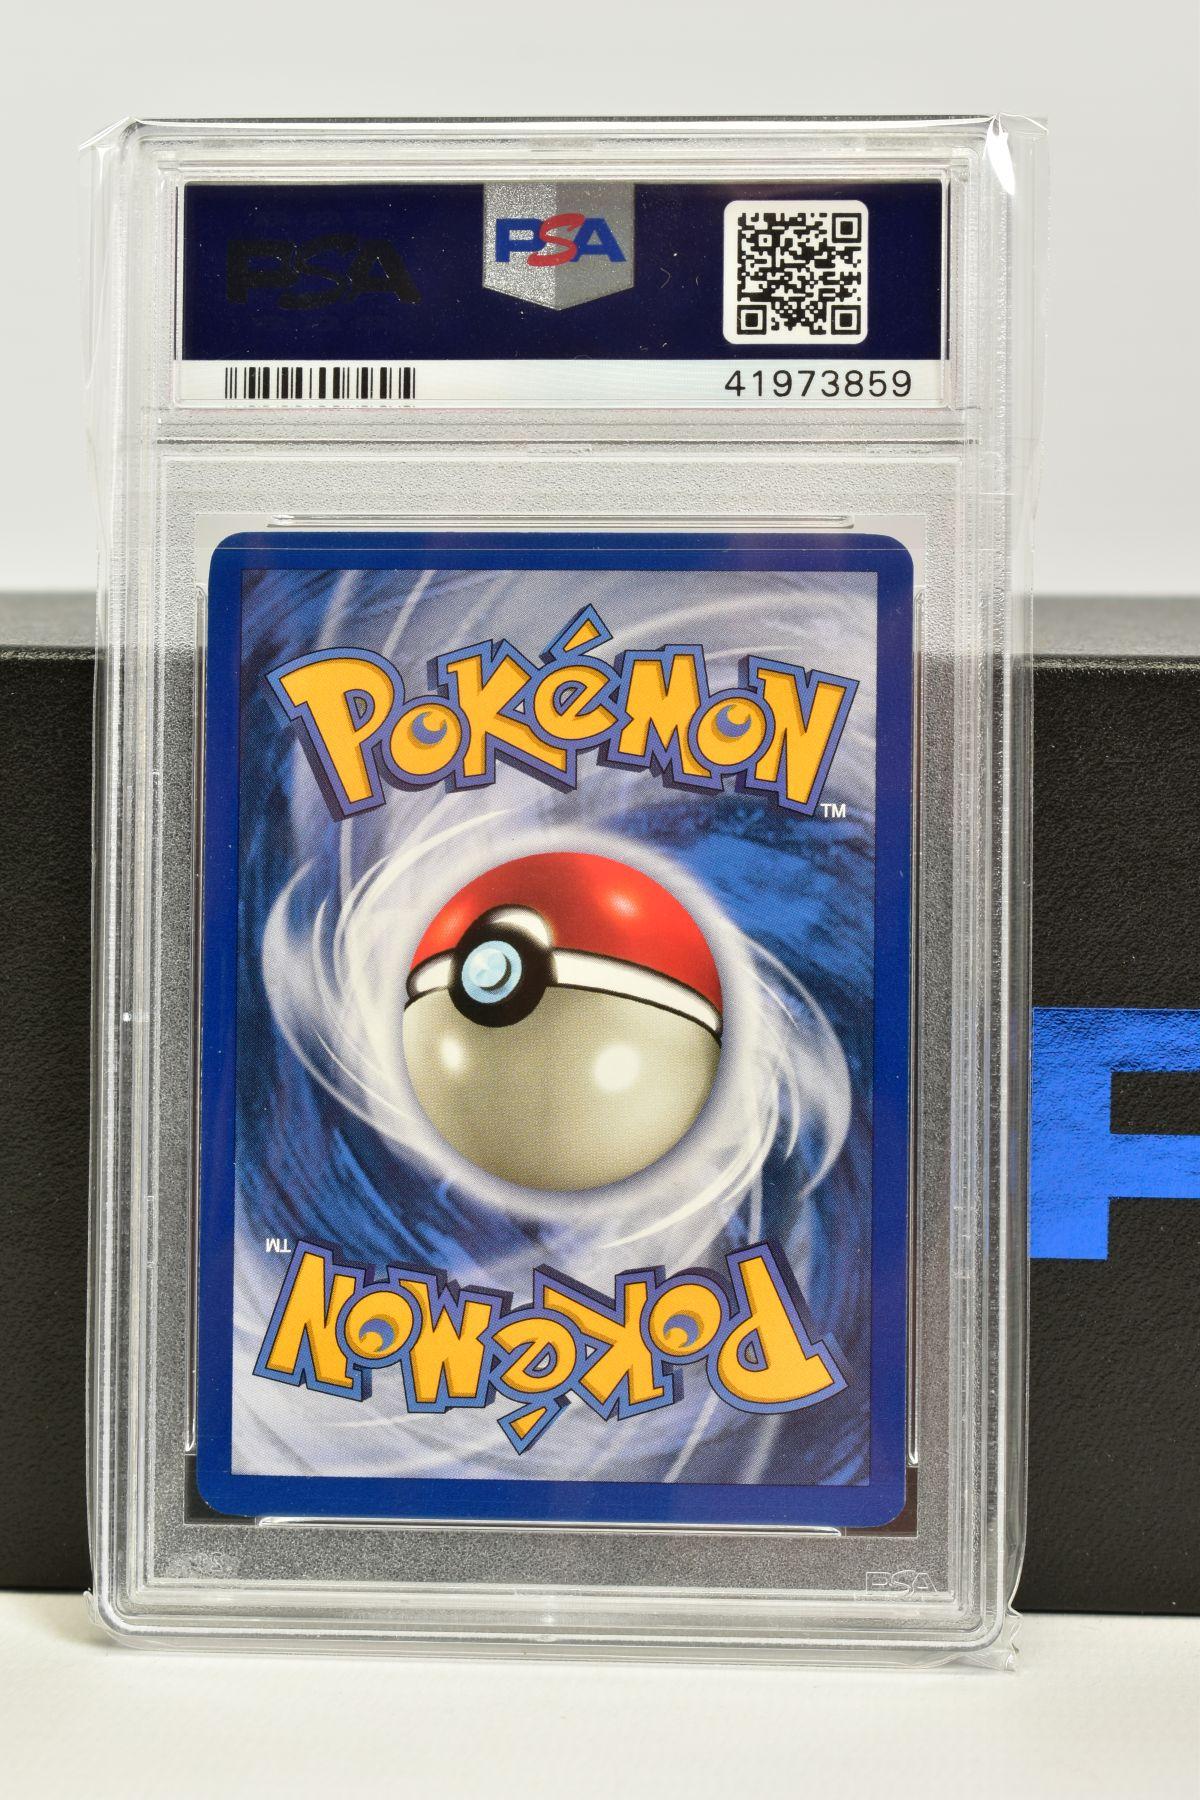 A PSA GRADED POKEMON 1ST EDITION FOSSIL SET GENGAR HOLO CARD, (5/62), graded GEM MINT 10 and - Image 2 of 2